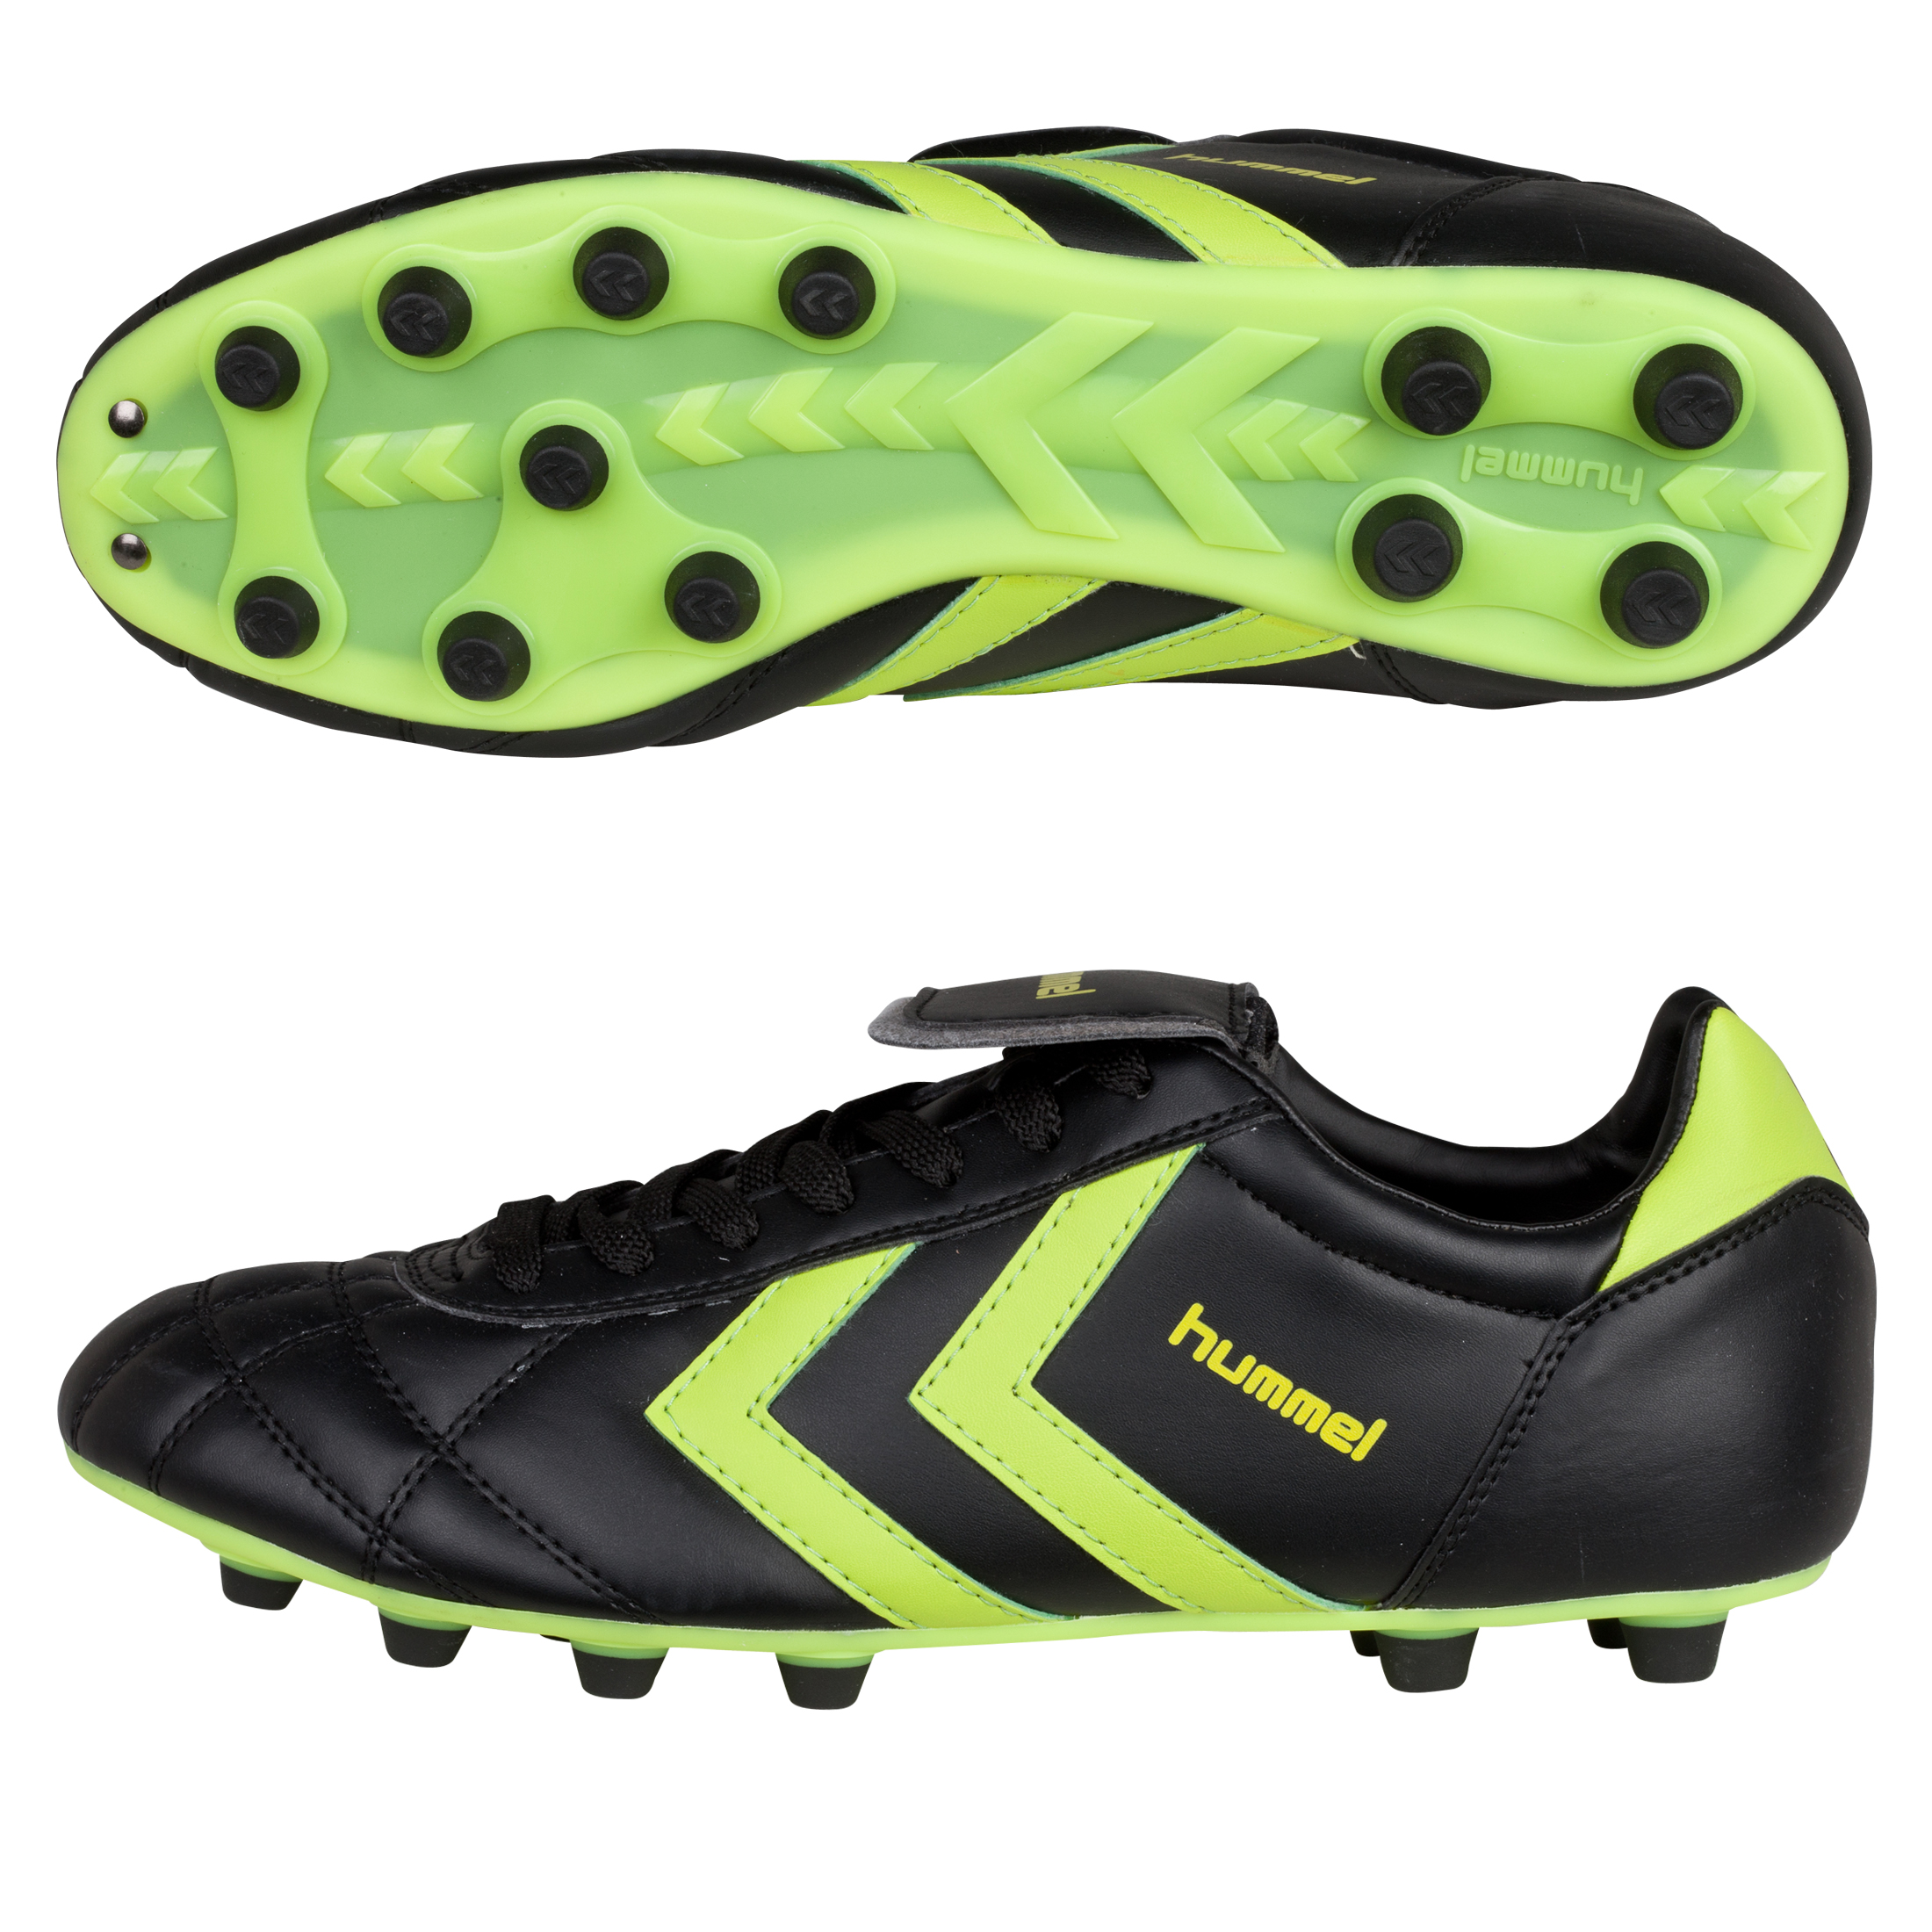 Hummel Old School Star Synthetic Firm Ground Football Boots - Black/Neon